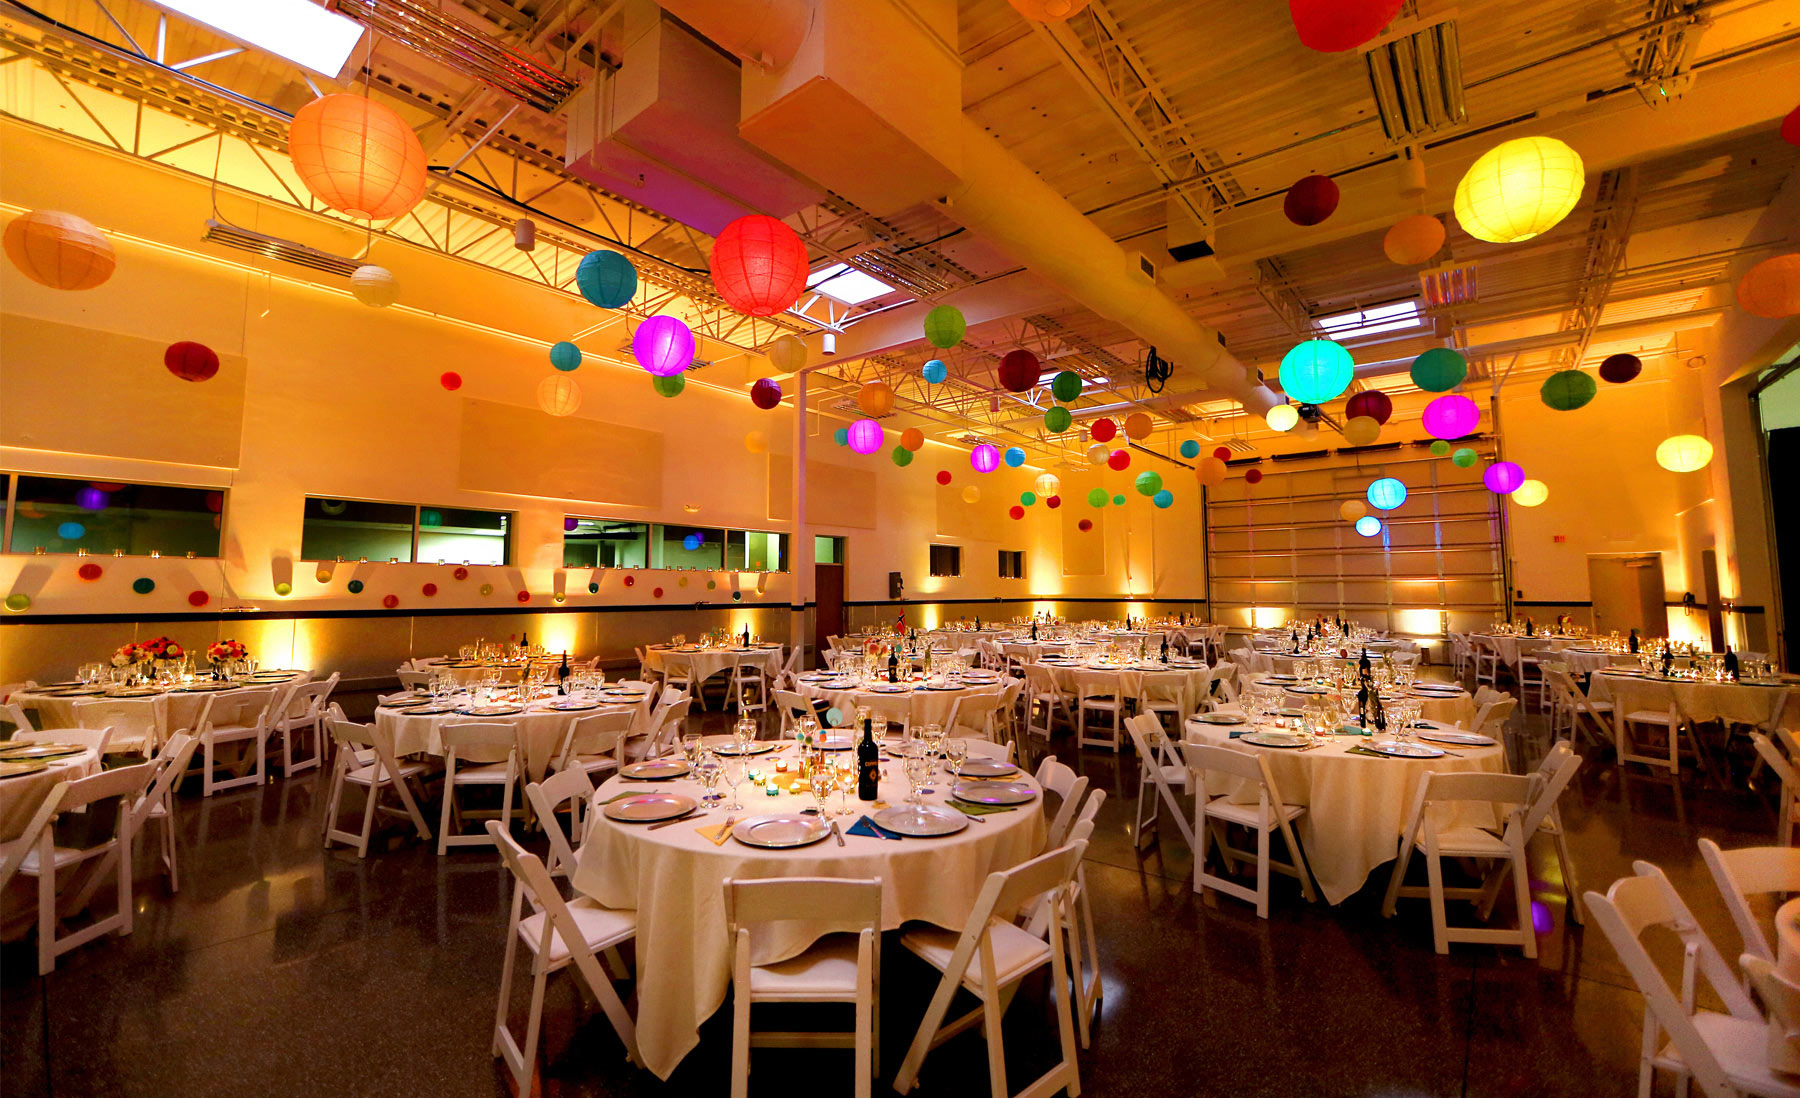 11-Minneapolis-Minnesota-Wedding-Photography-by-Vick-Photography-Reception-Colorful-Decor-Madeline-&-Matt.jpg